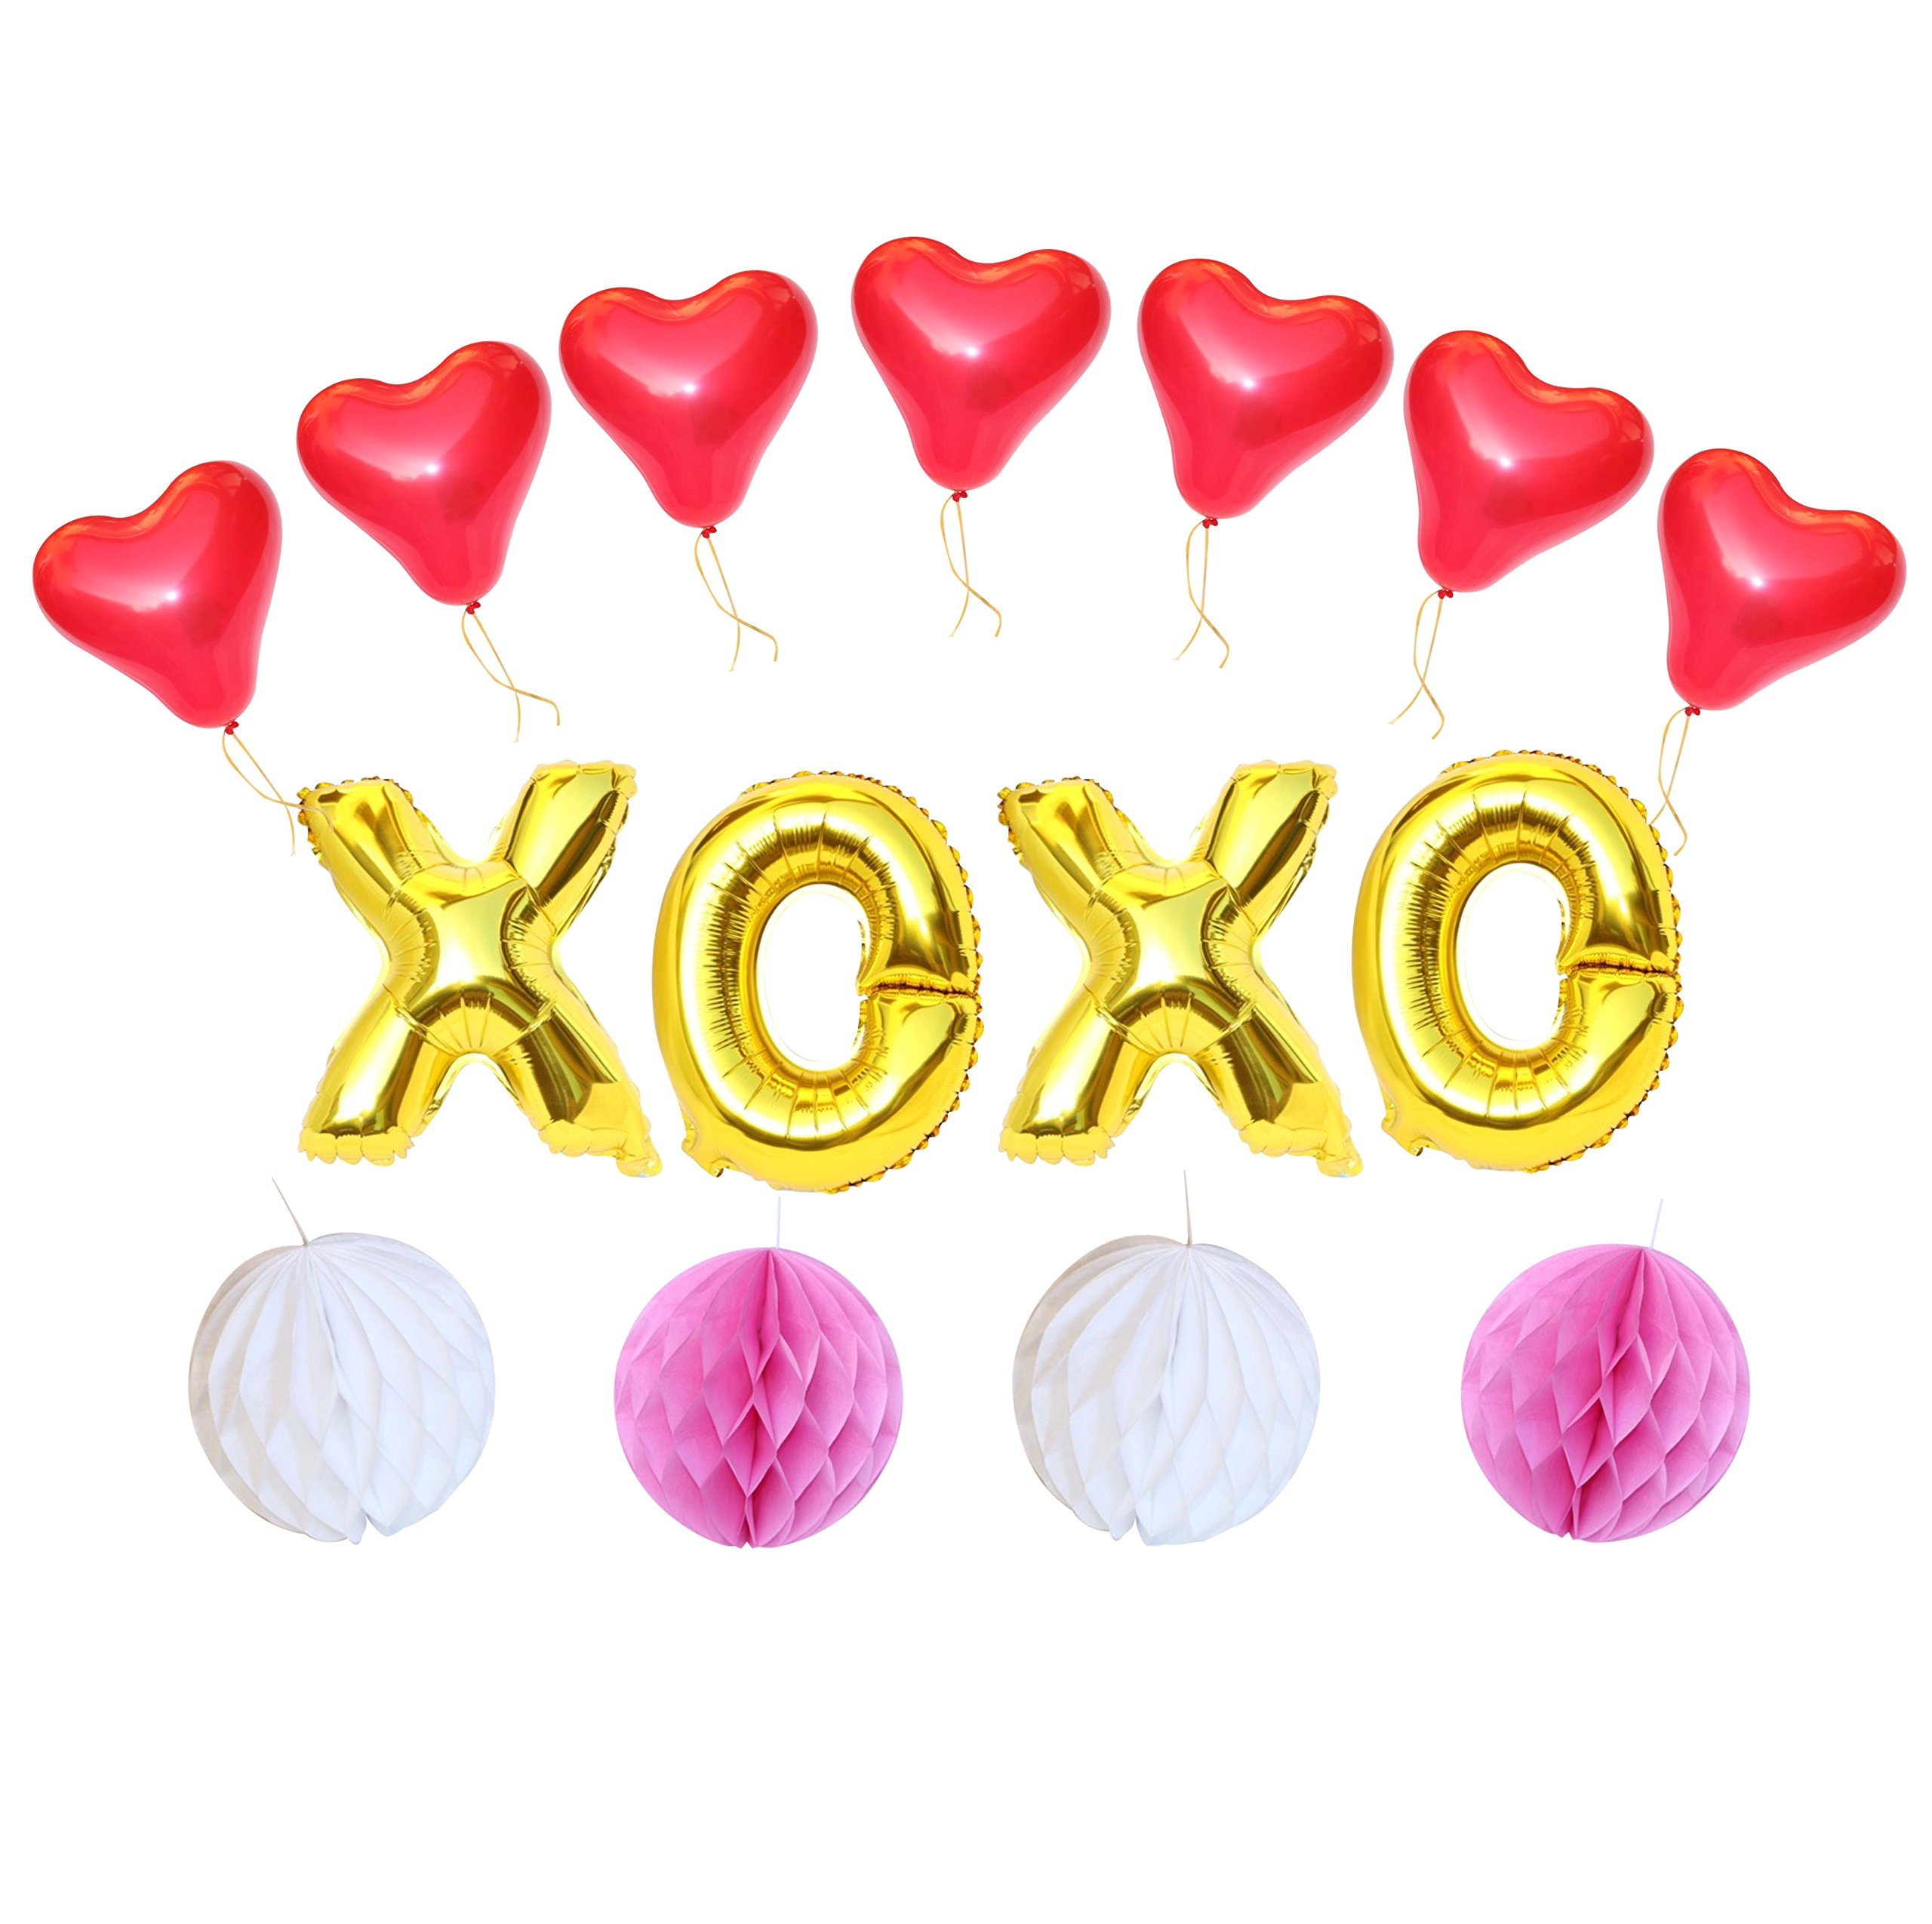 Anniversary XOXO Balloon Set: 16'' Gold foil Letters with Red Hearts, Pink & White Honeycomb Balls- Great for Anniversary, Valentine's Day, Engagement, Prom Decor (15 Piece Set) by PartyBox!